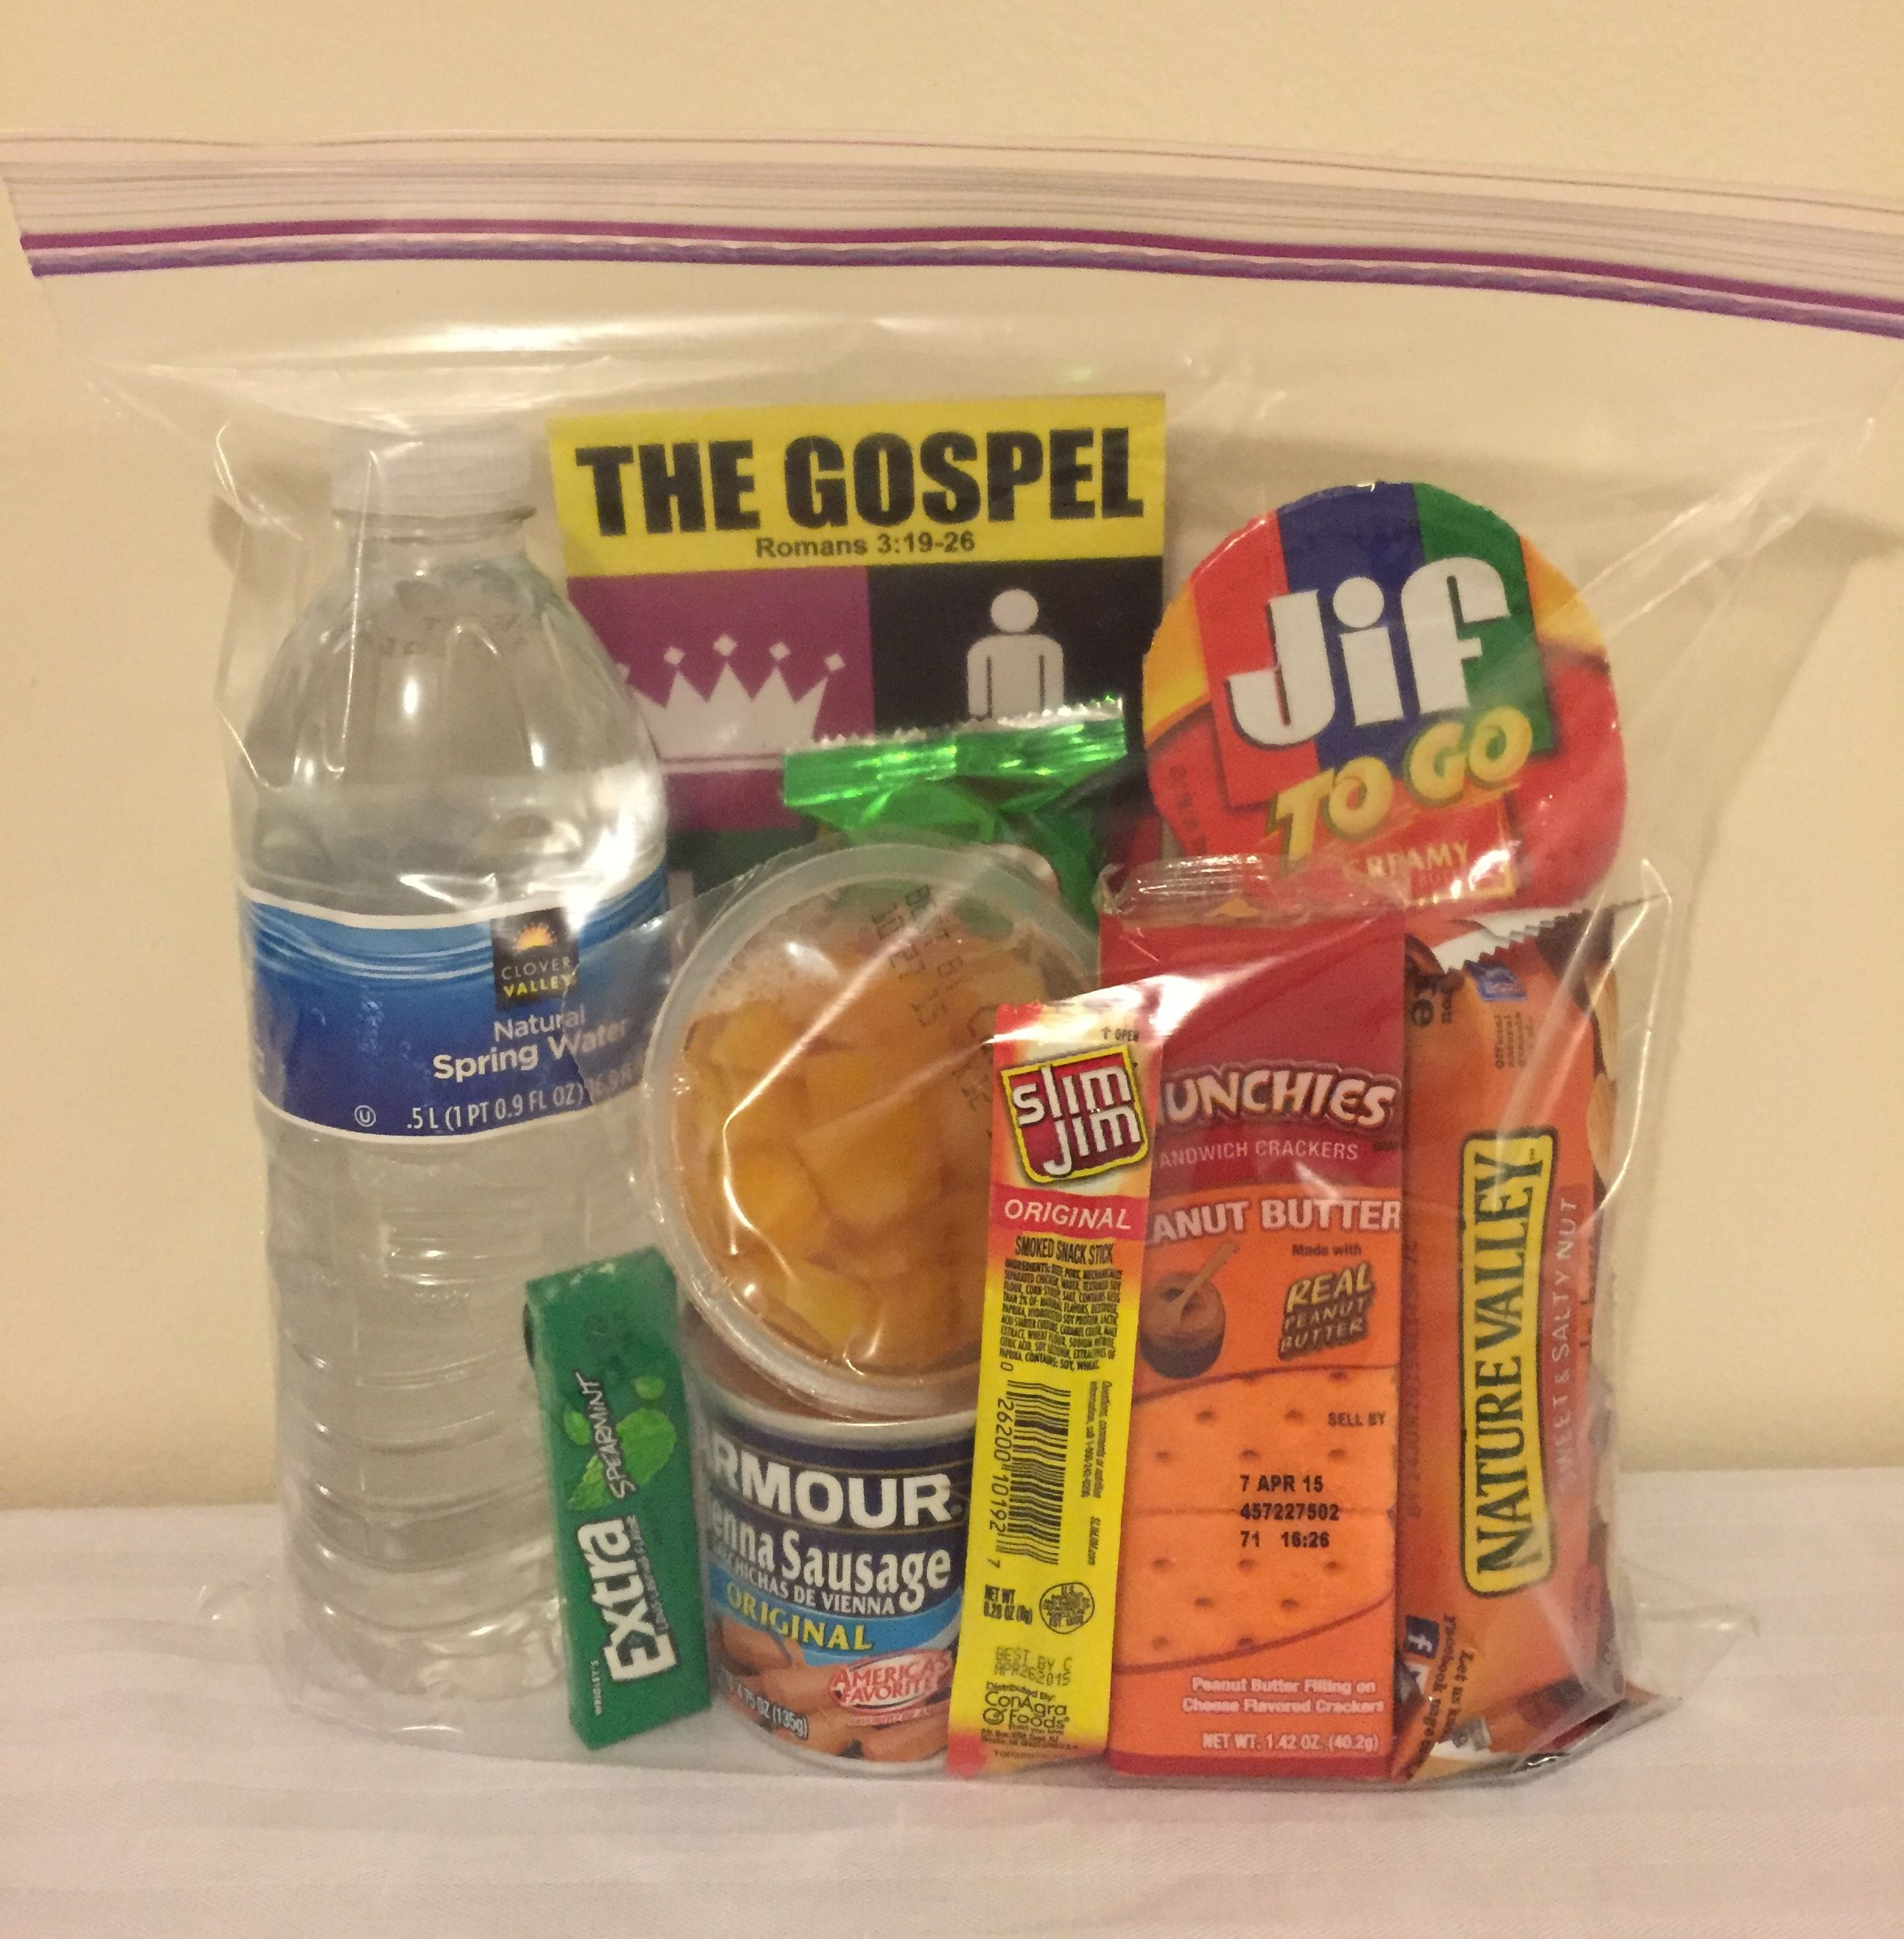 snack pack and hygiene pack ideas for the homeless possible gifts